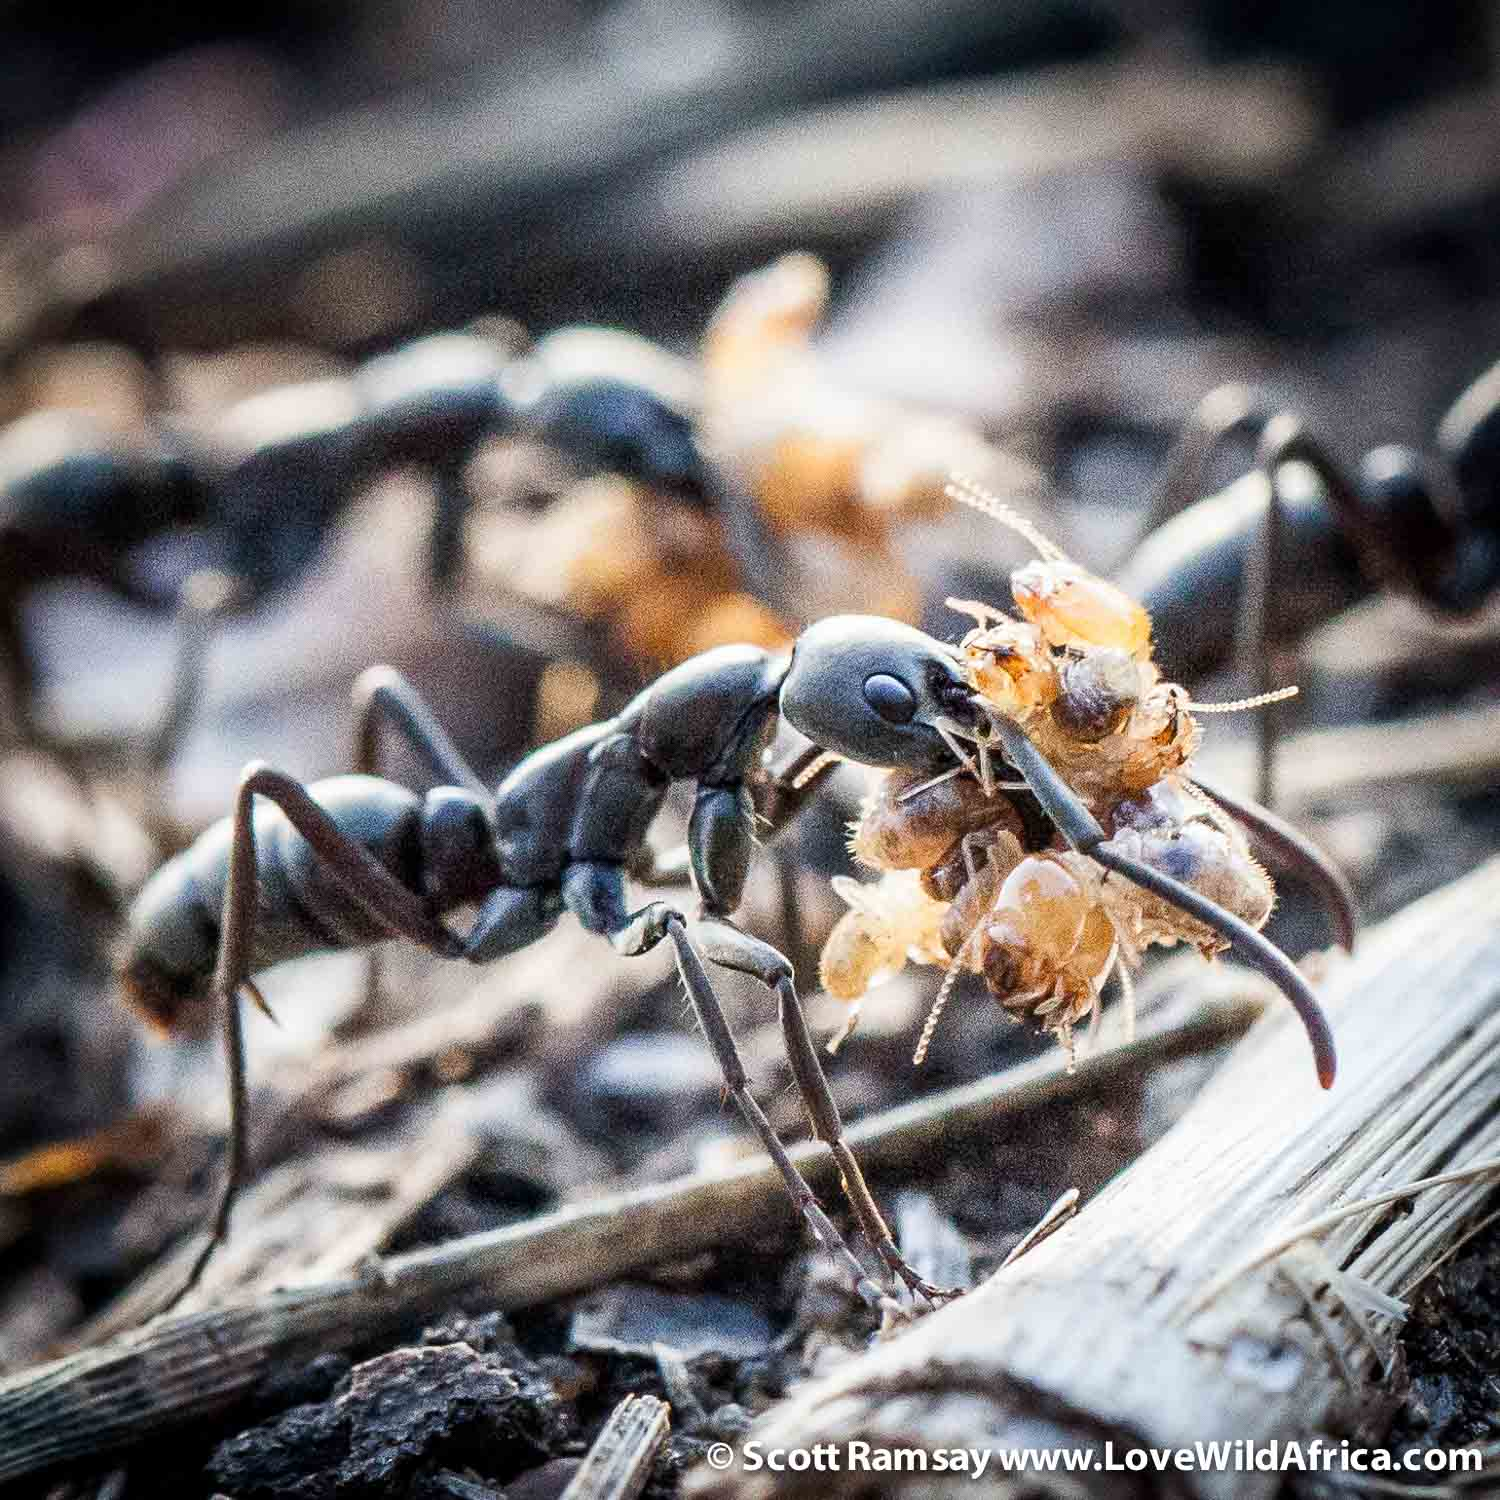 Gorongosa has an extensive insect fauna, and has drawn great admiration from eminent biologist EO Wilson, who has visited the park several times and has mentored several young local biologists. We came across these Matabele ants one afternoon, as they were raiding a termite nest. To me, watching these remarkable insects was as intriguing as watching lions on a hunt.